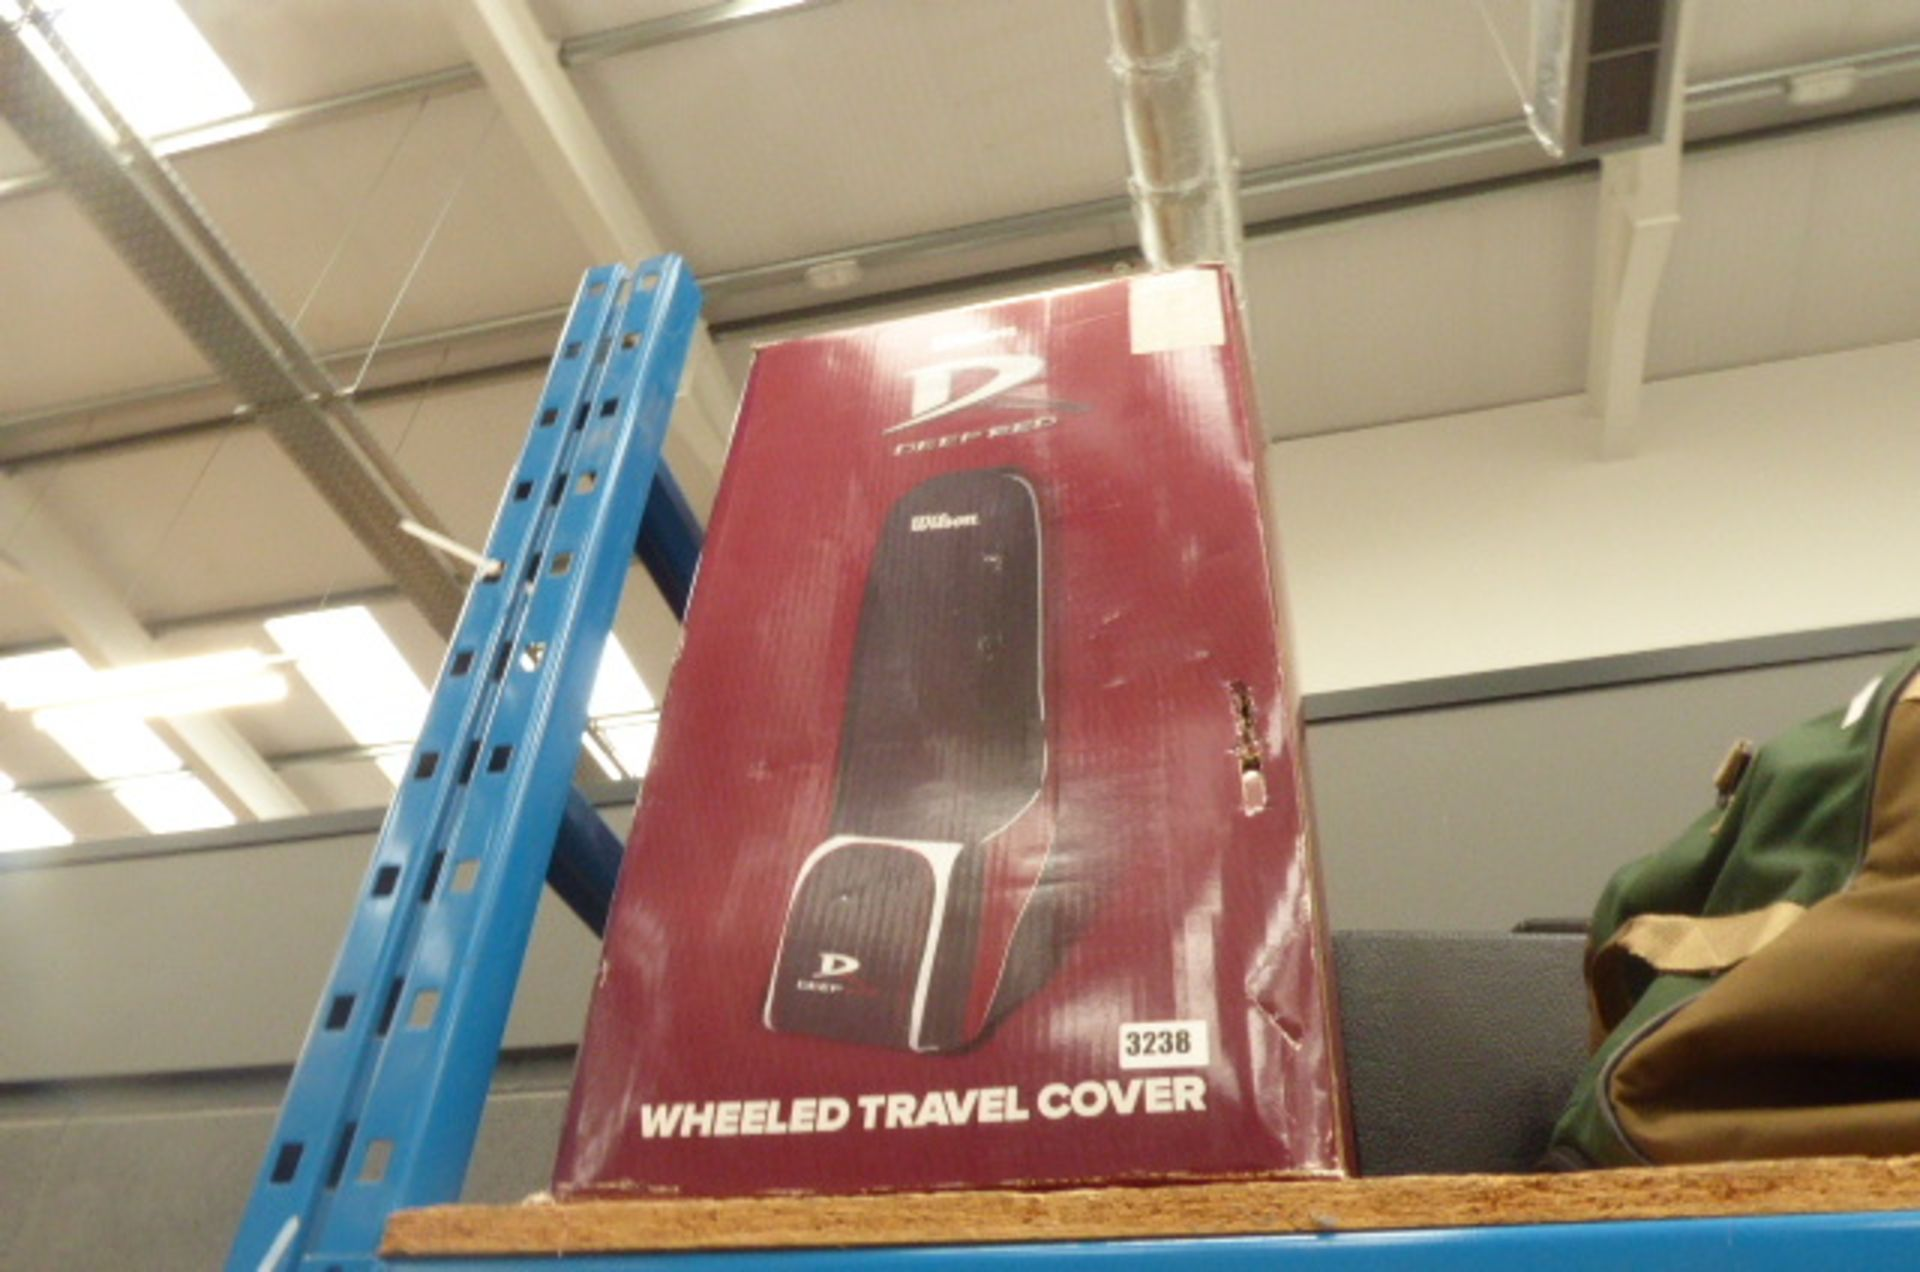 Lot 3238 - Boxed Wilson wheeled travel cover